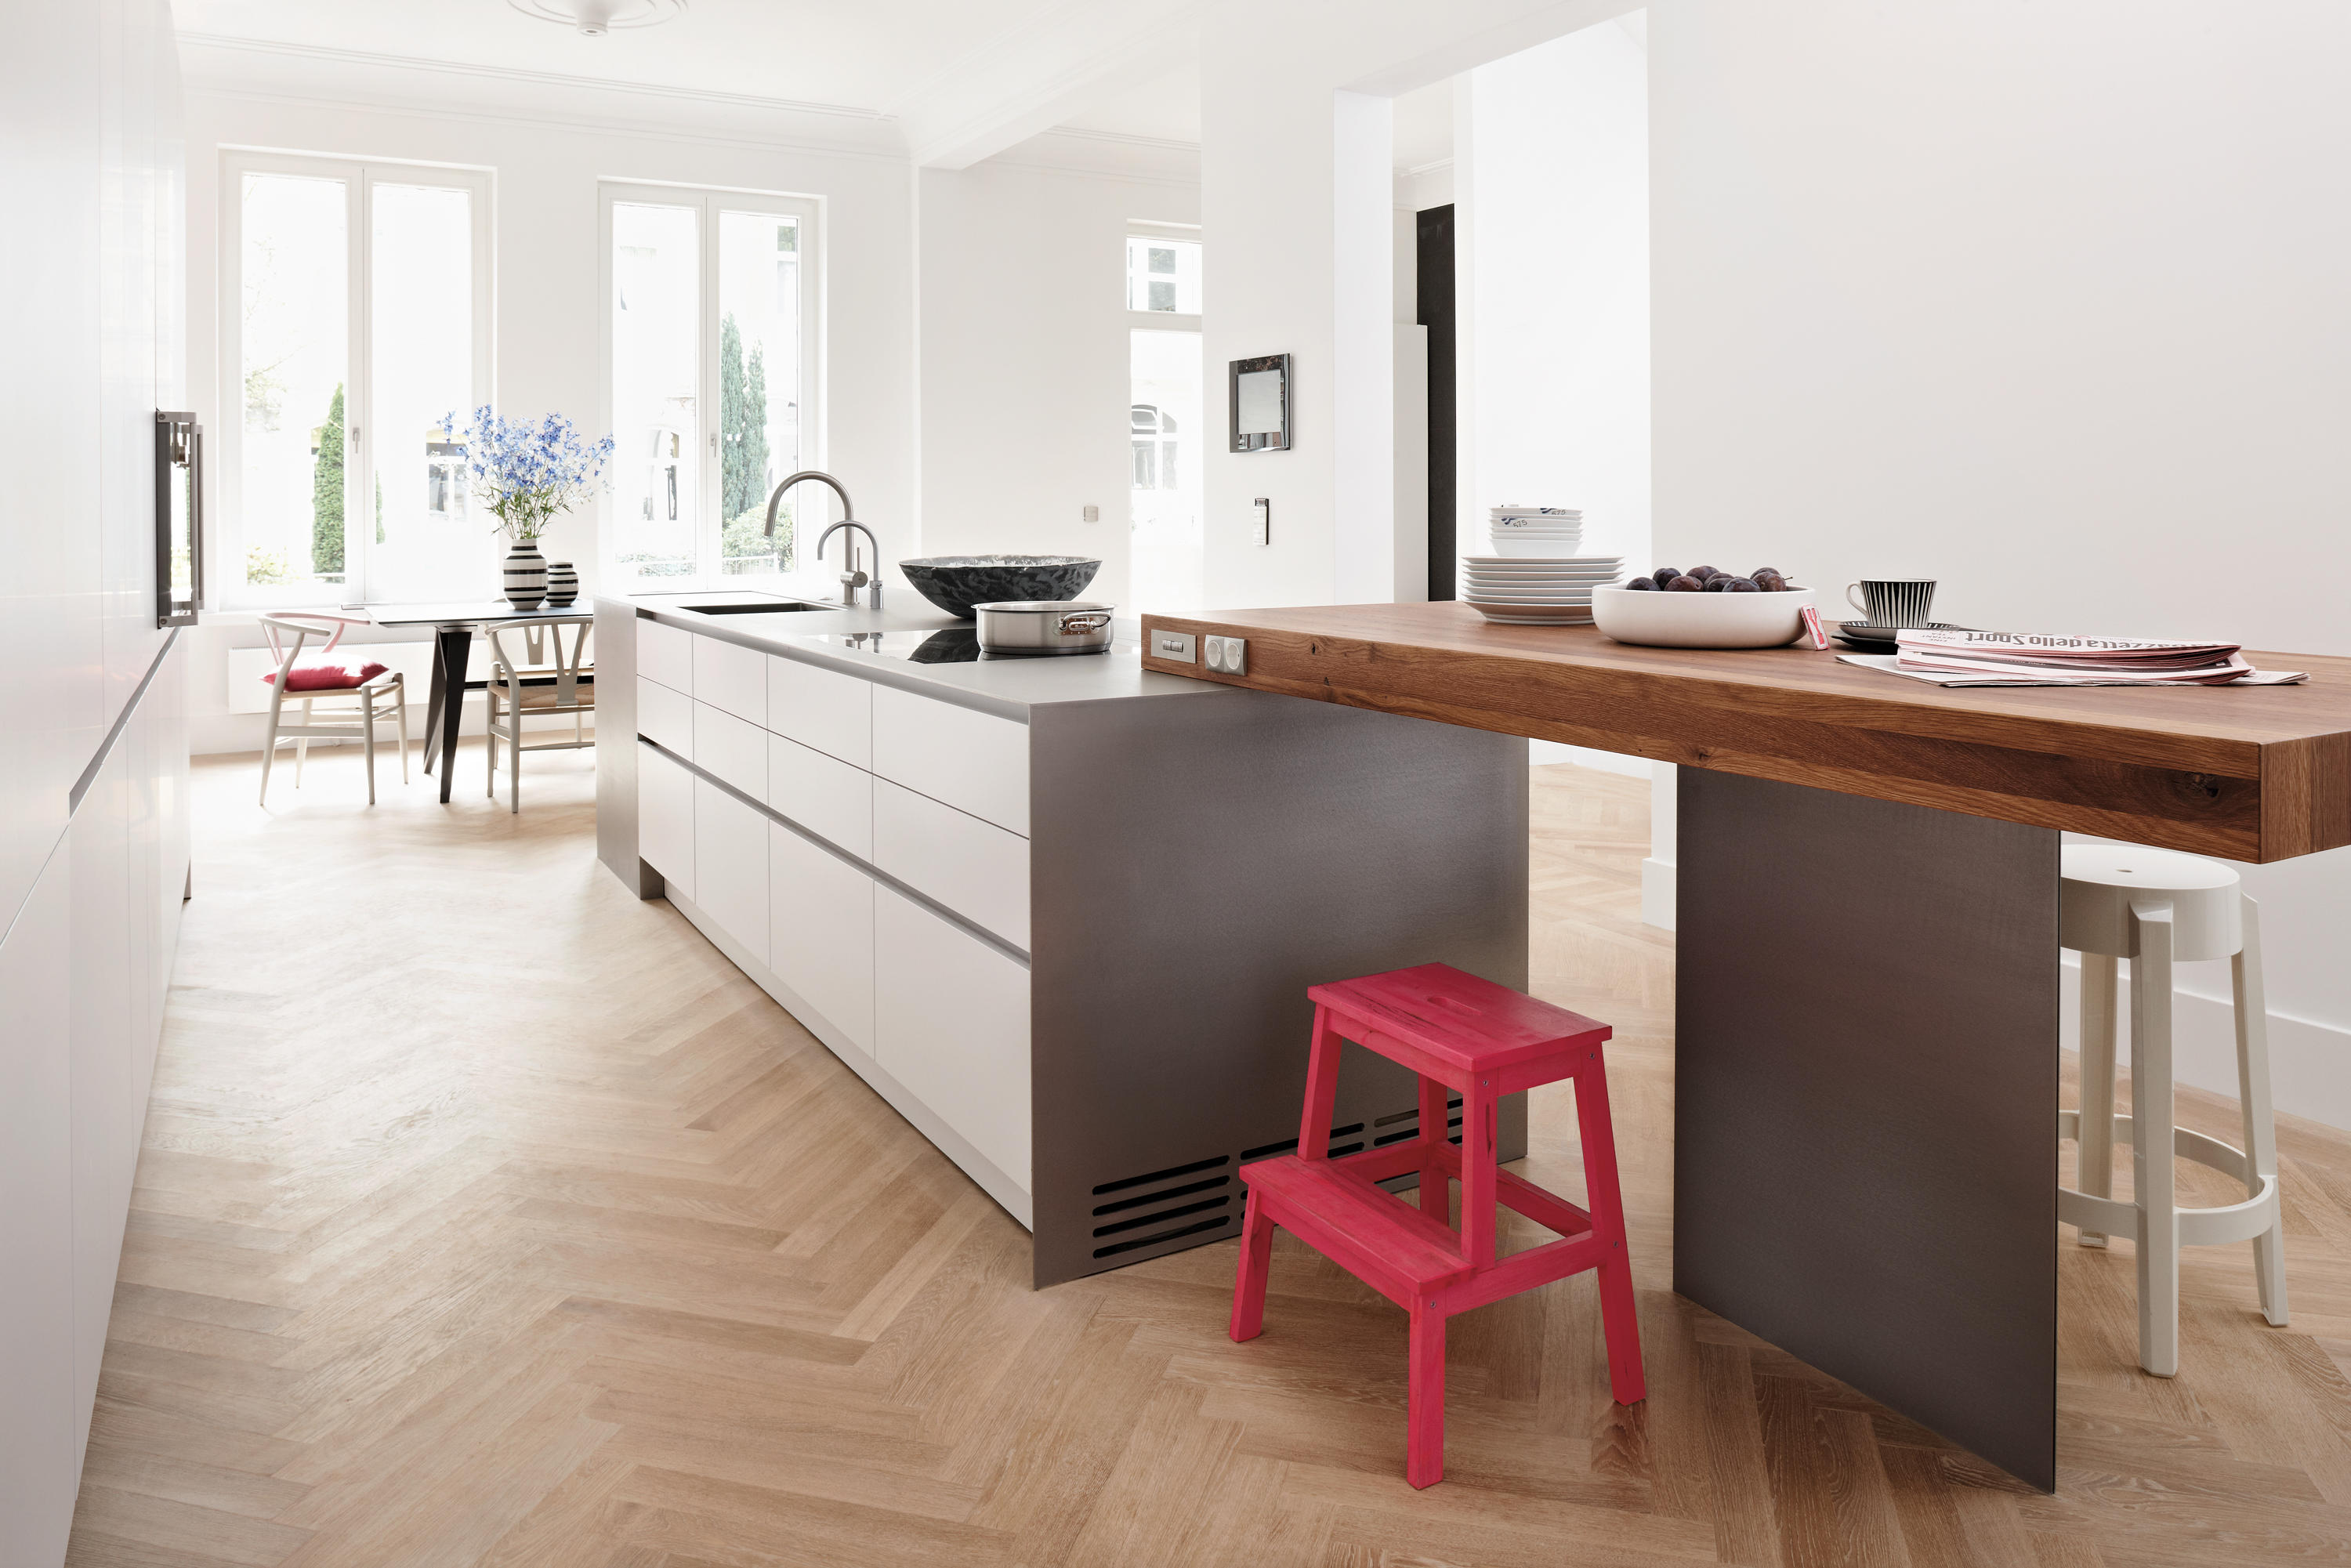 Haus hamburg island kitchens from eggersmann architonic for Haus kitchens